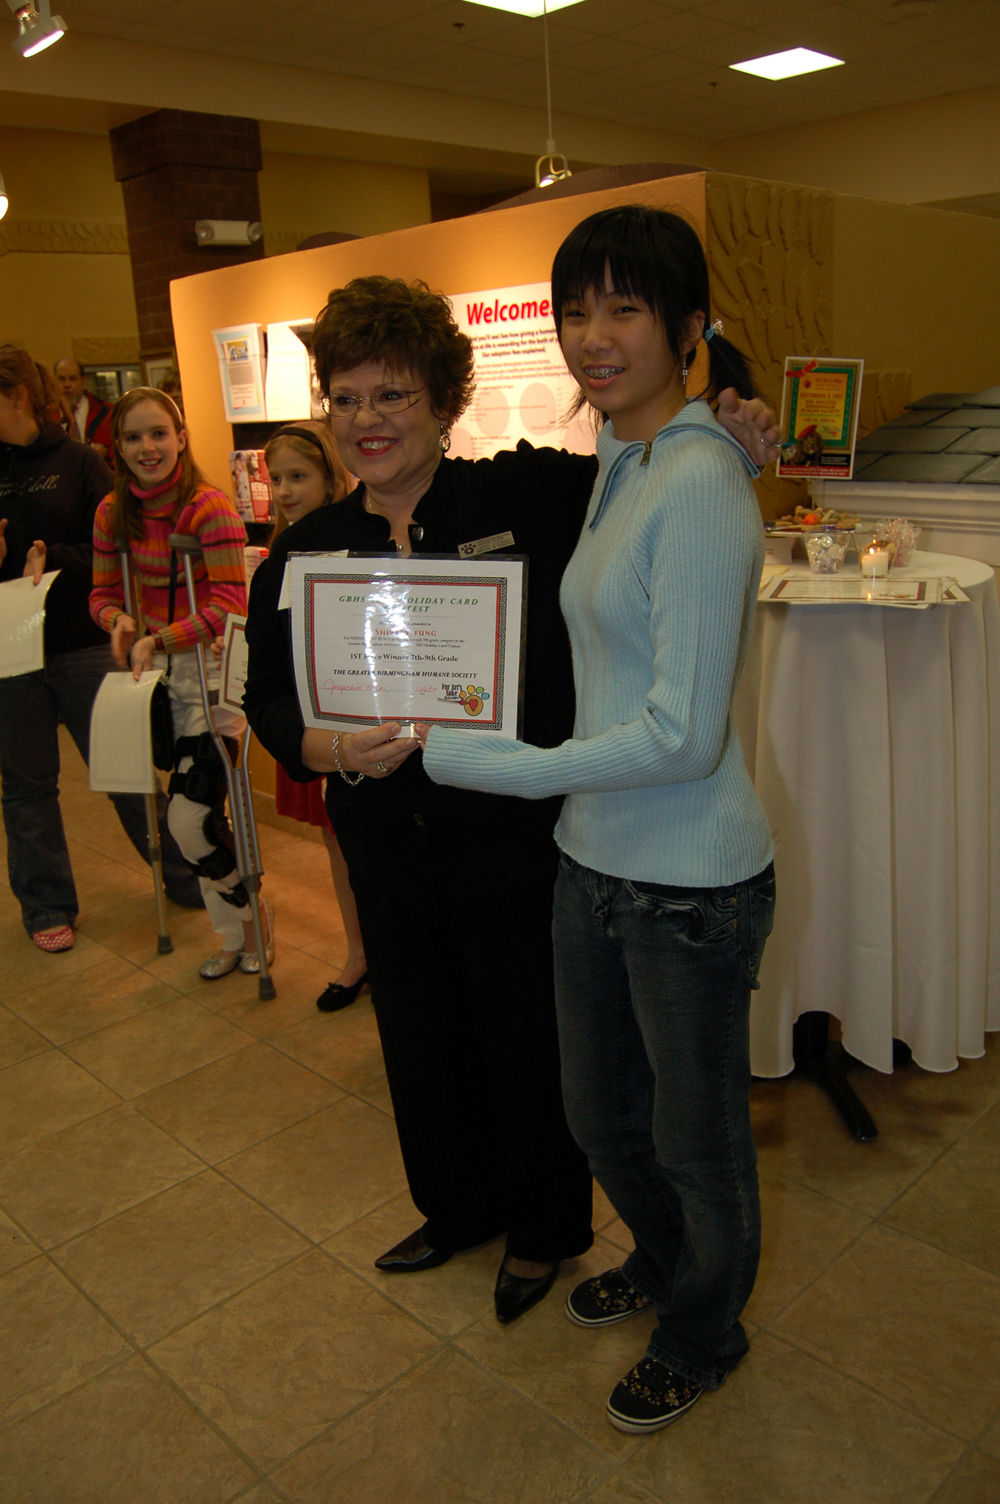 Cathy Stewart and Shirley Fung